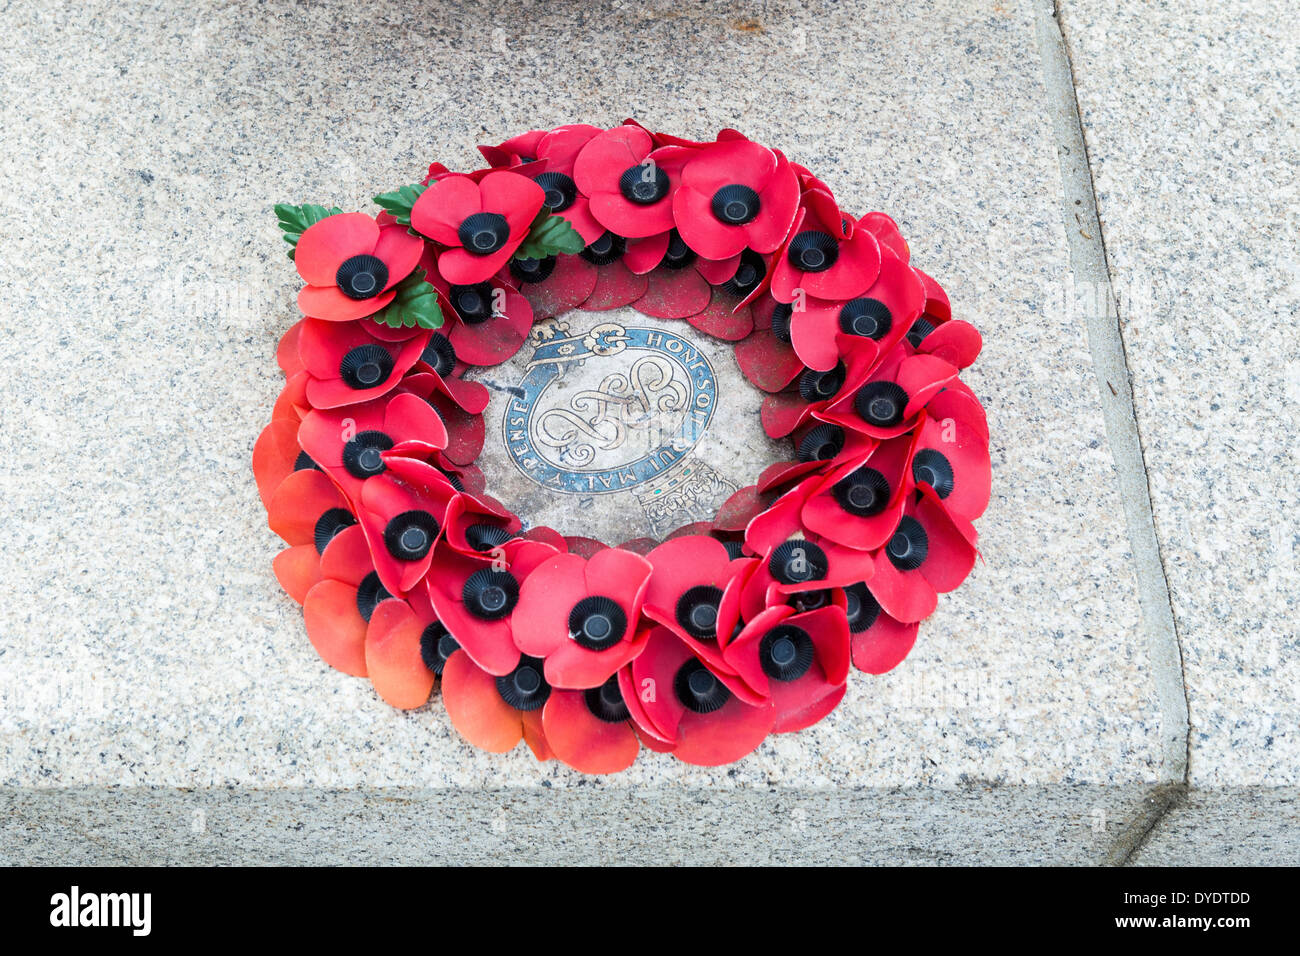 Poppy Wreath on Guards Division Memorial that honours dead soldiers of 5 regiments of World Wars -  Horse Guards Road, London - Stock Image